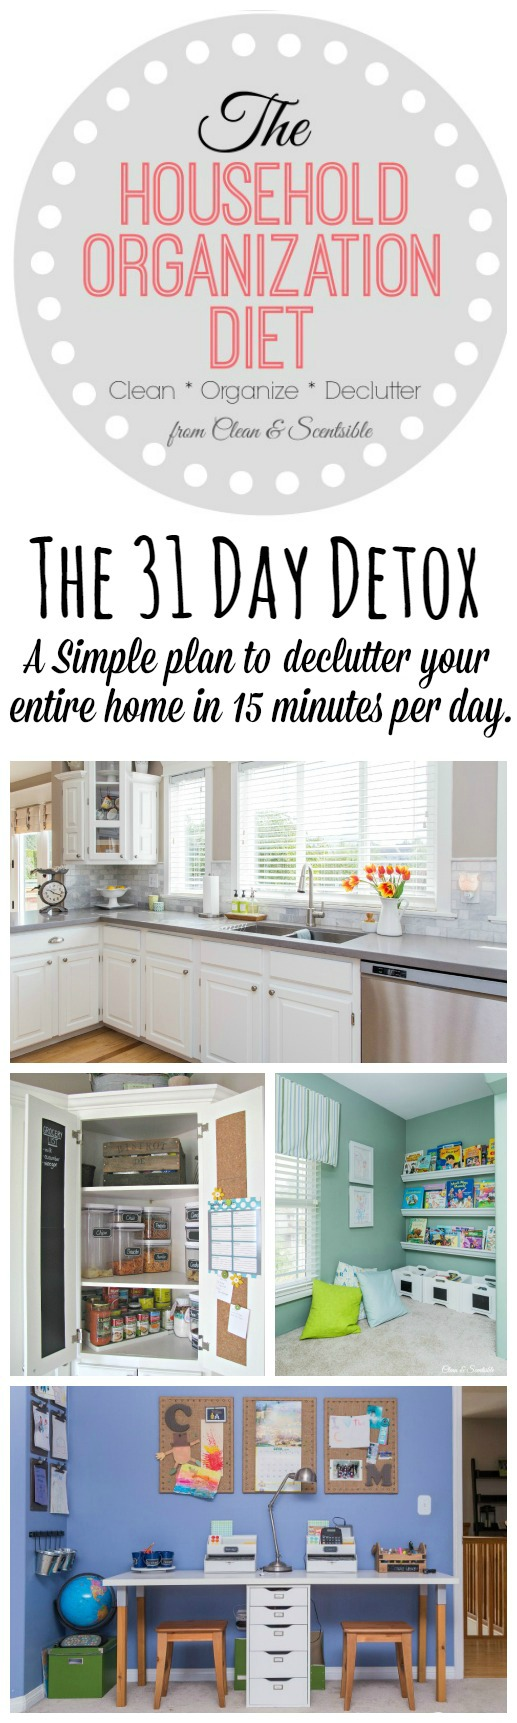 The Household Organization Diet 31 Day Detox 2015 Clean